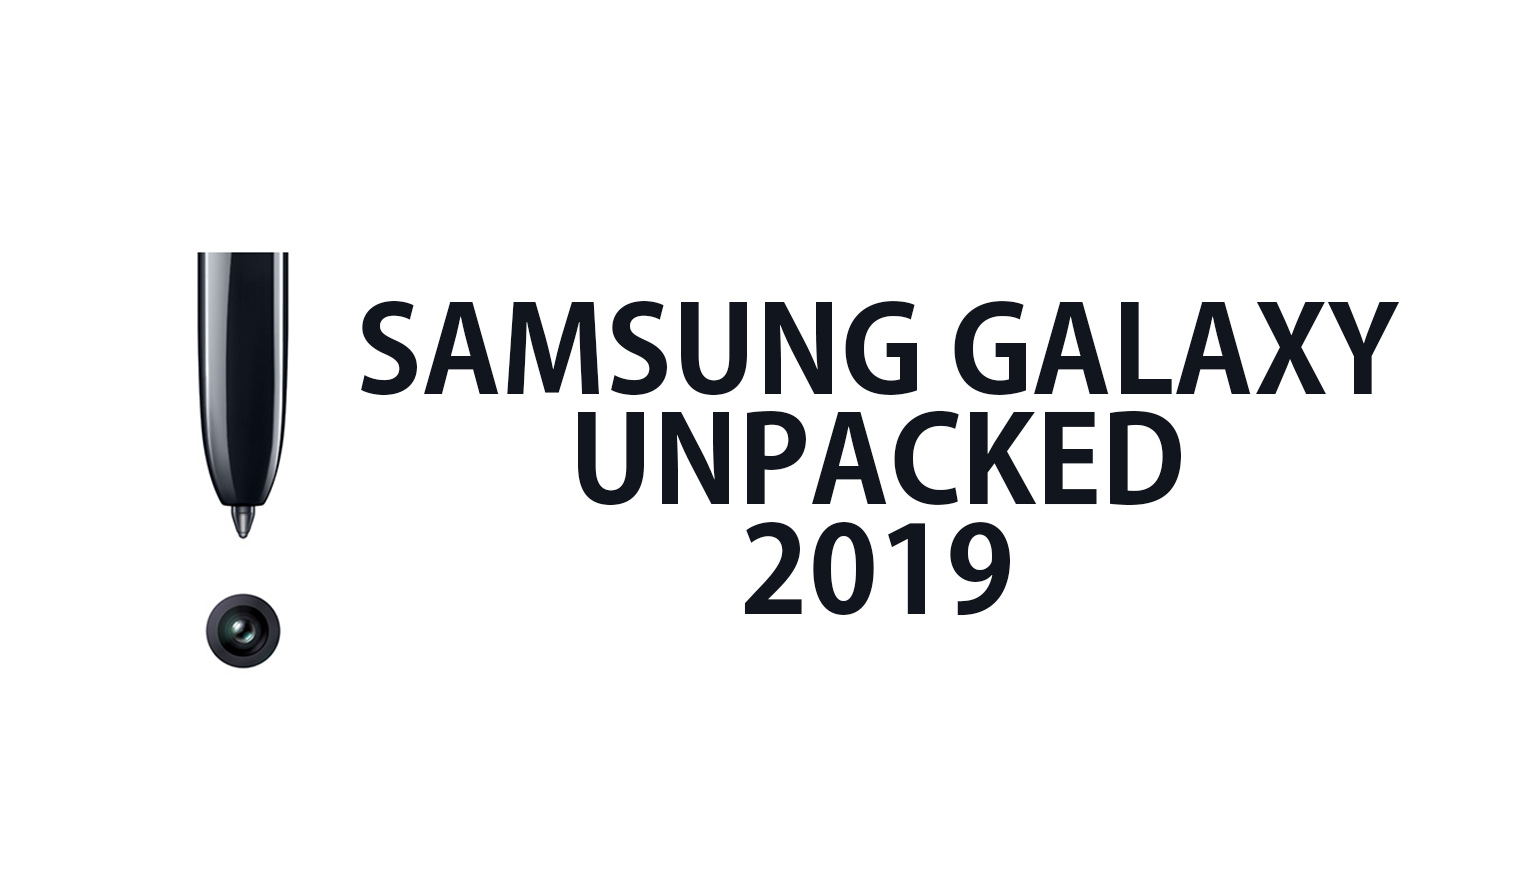 Samsung May Launch Galaxy Tab S6 and S5 at Galaxy Unpacked